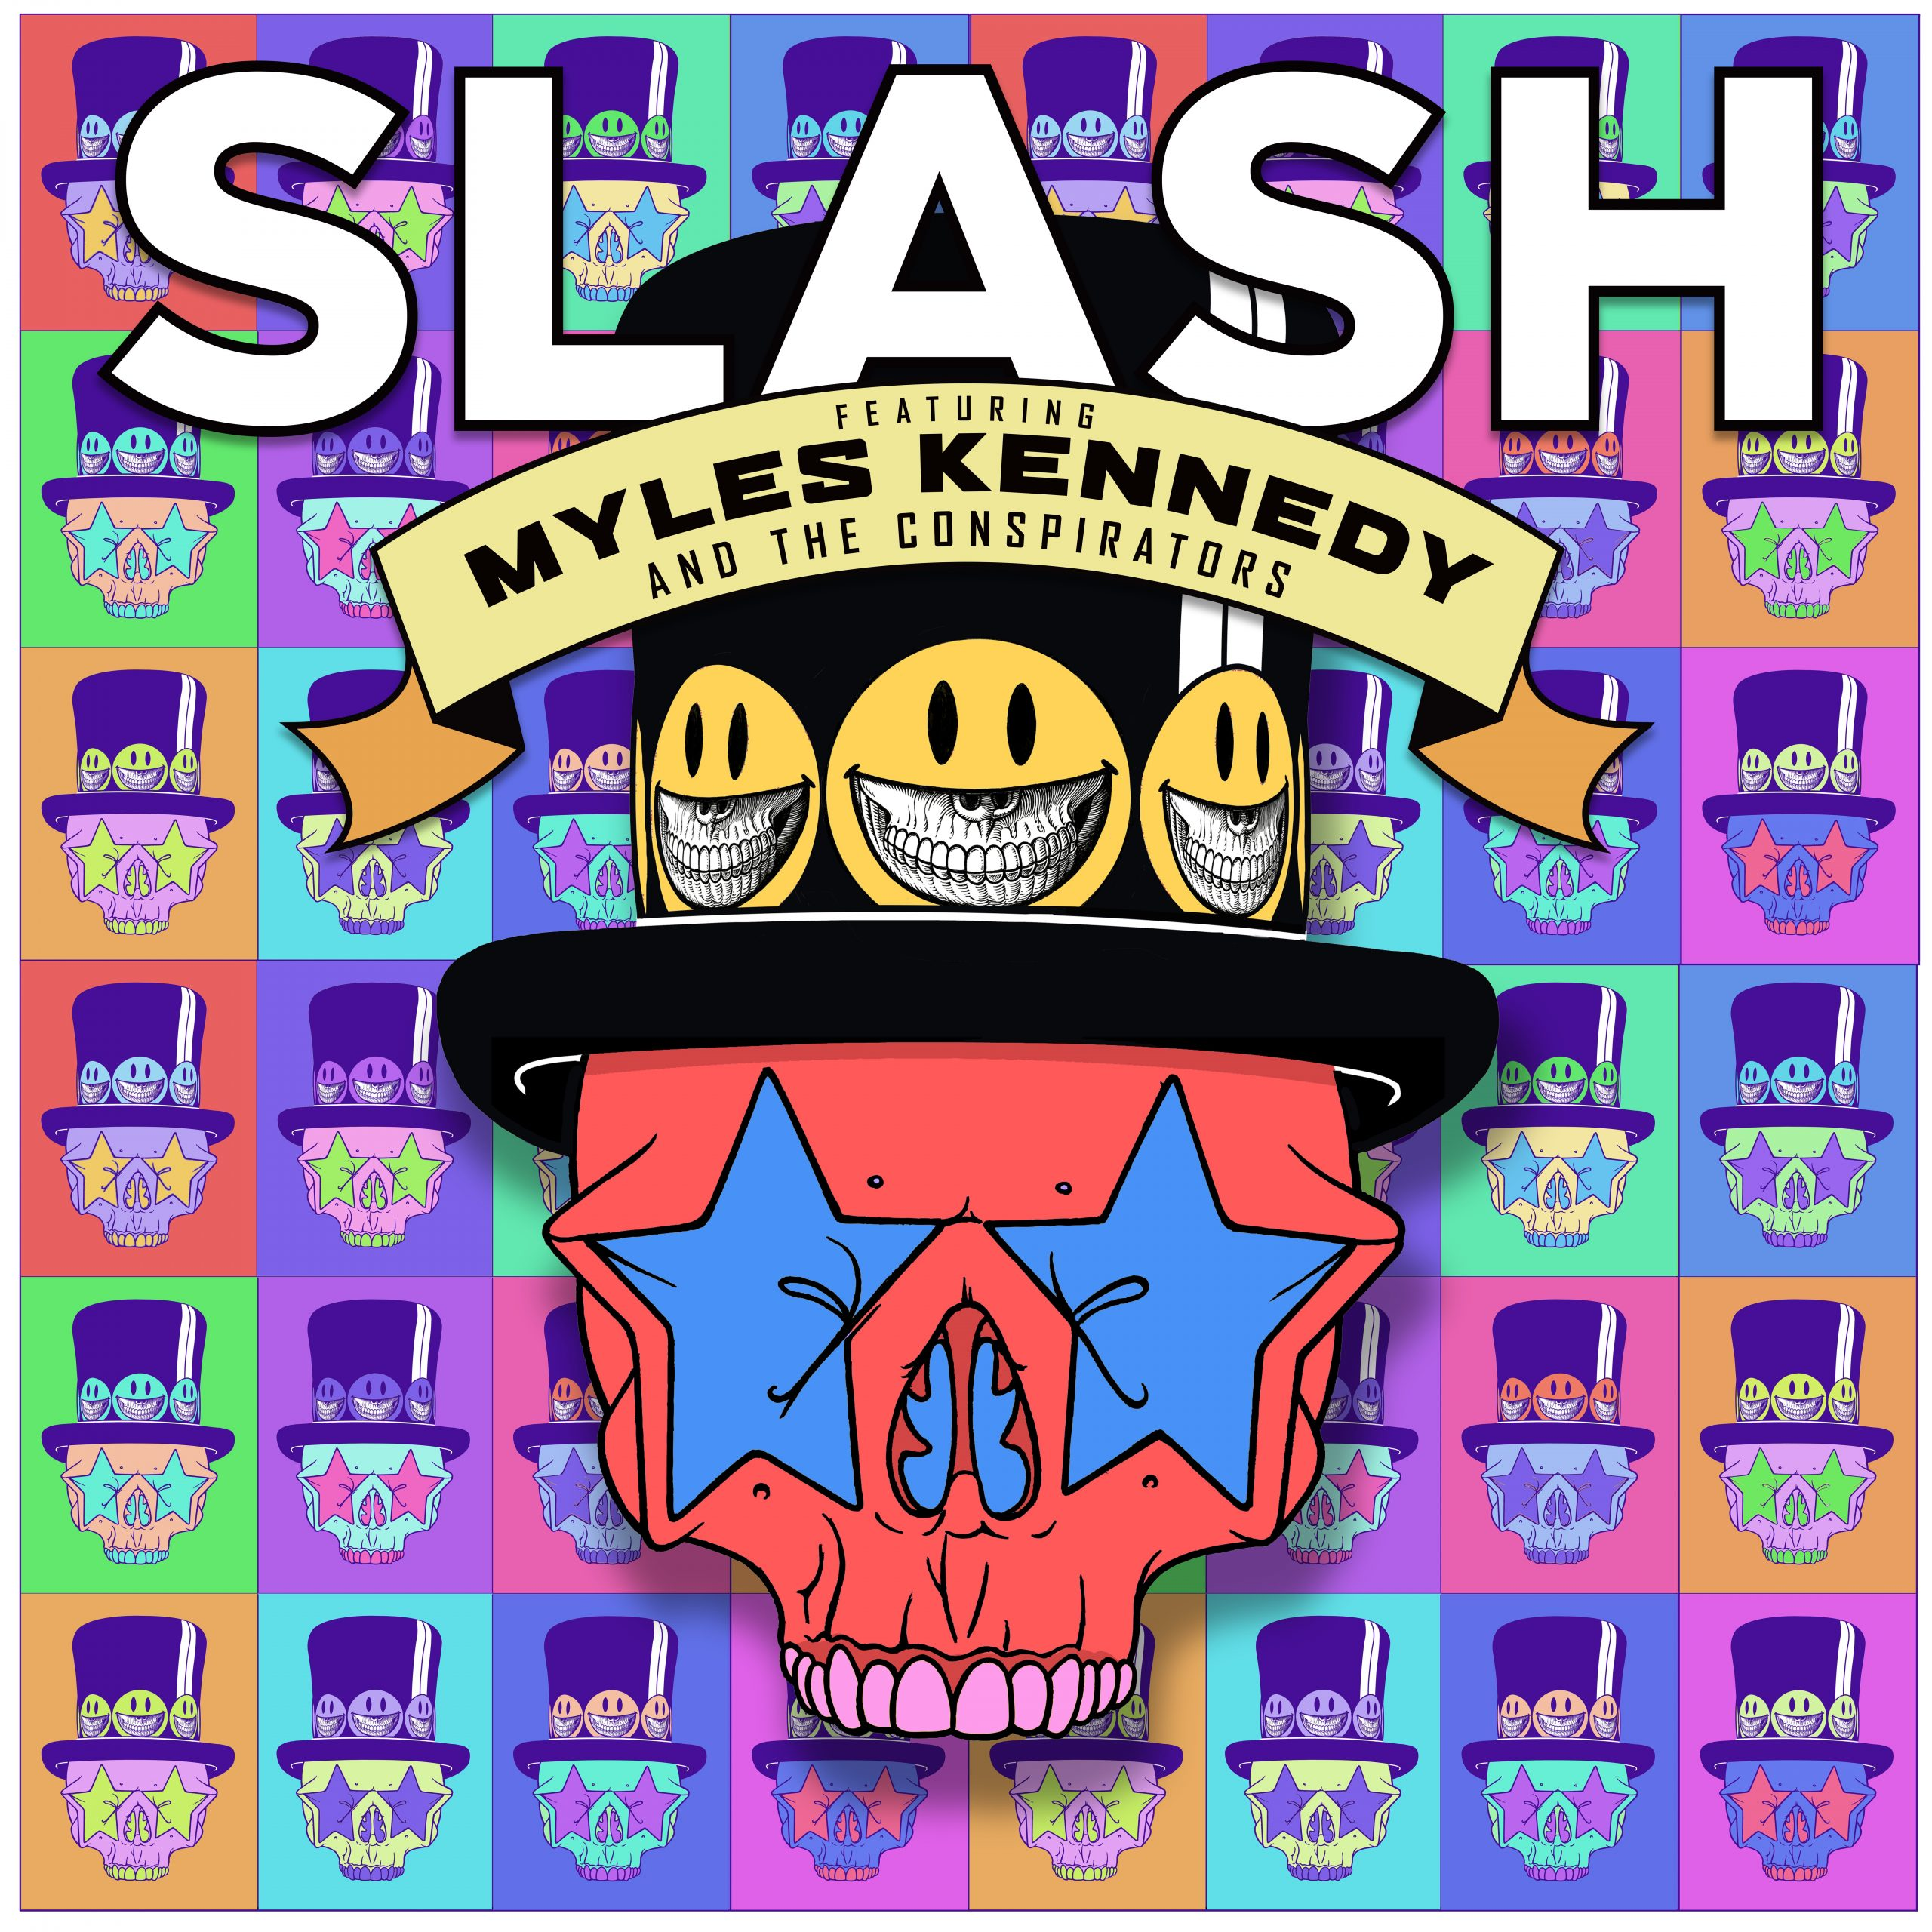 Mind Your Manners >> Slash Featuring Myles Kennedy The Conspirators Mind Your Manners